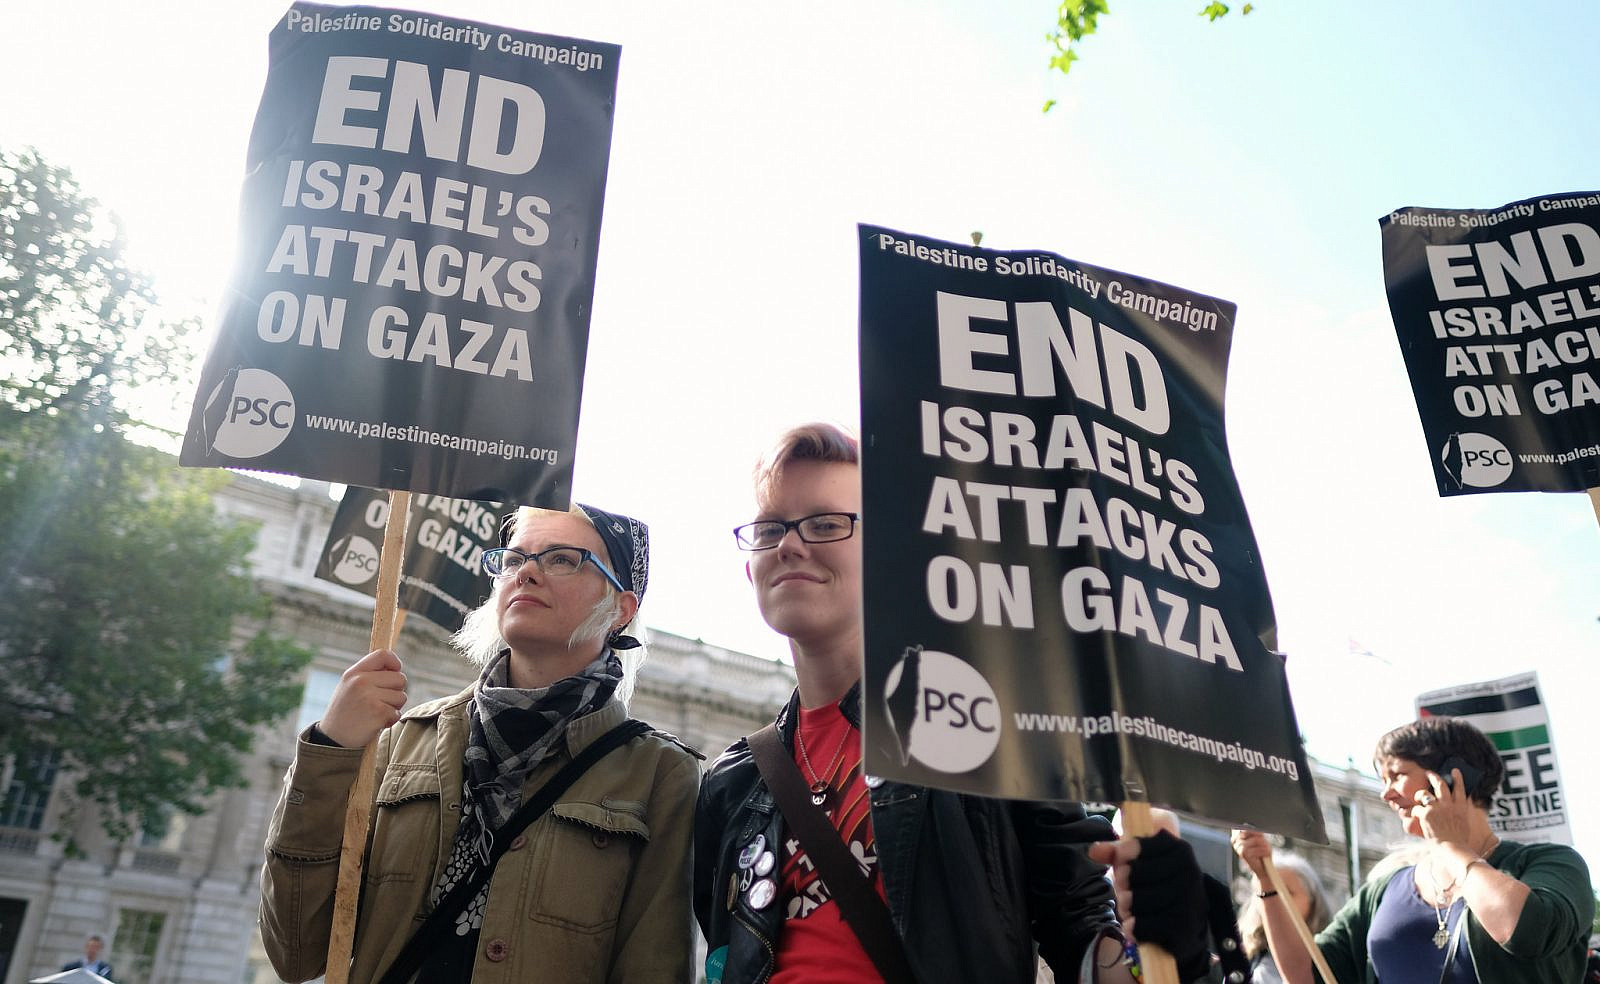 Rally by the Palestine Solidarity Campaign outside Downing Street to protest the blockade of Gaza and demanding an end to direct British support for Israel's oppression of Palestinians, July 8, 2016. (Alisdare Hickson/Flickr)